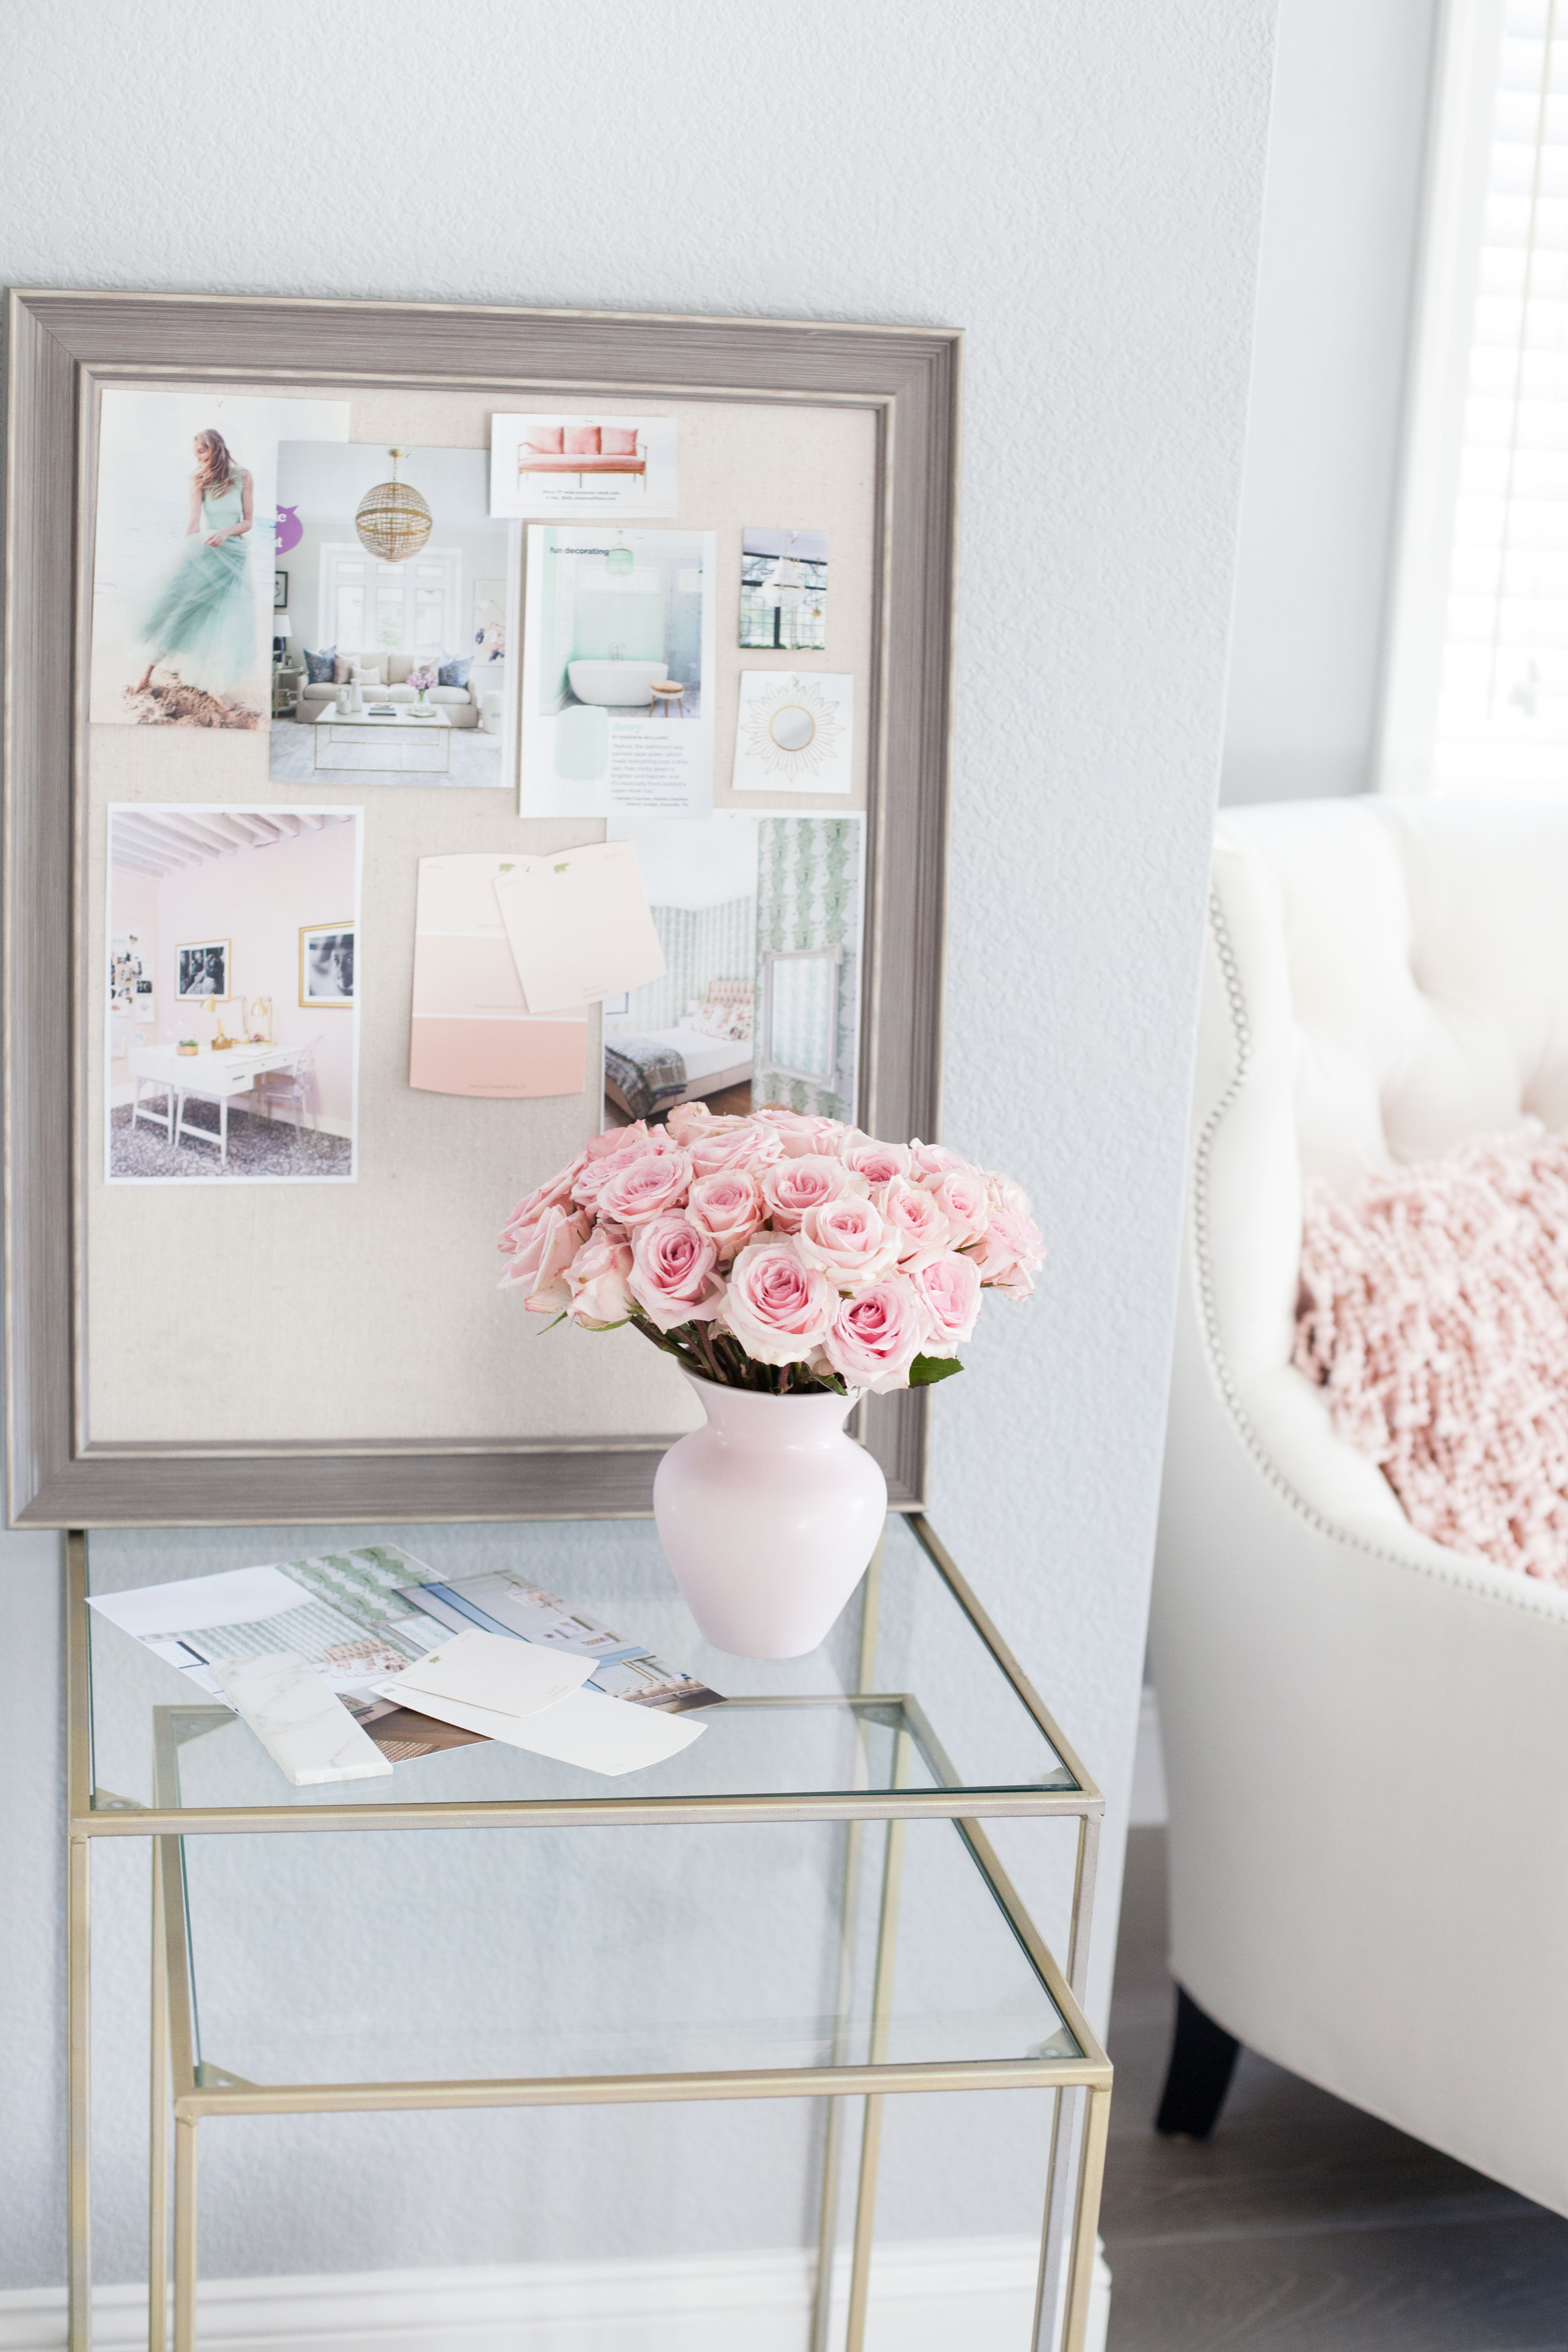 Home Redesign with Homepolish - Lombard and Fifth